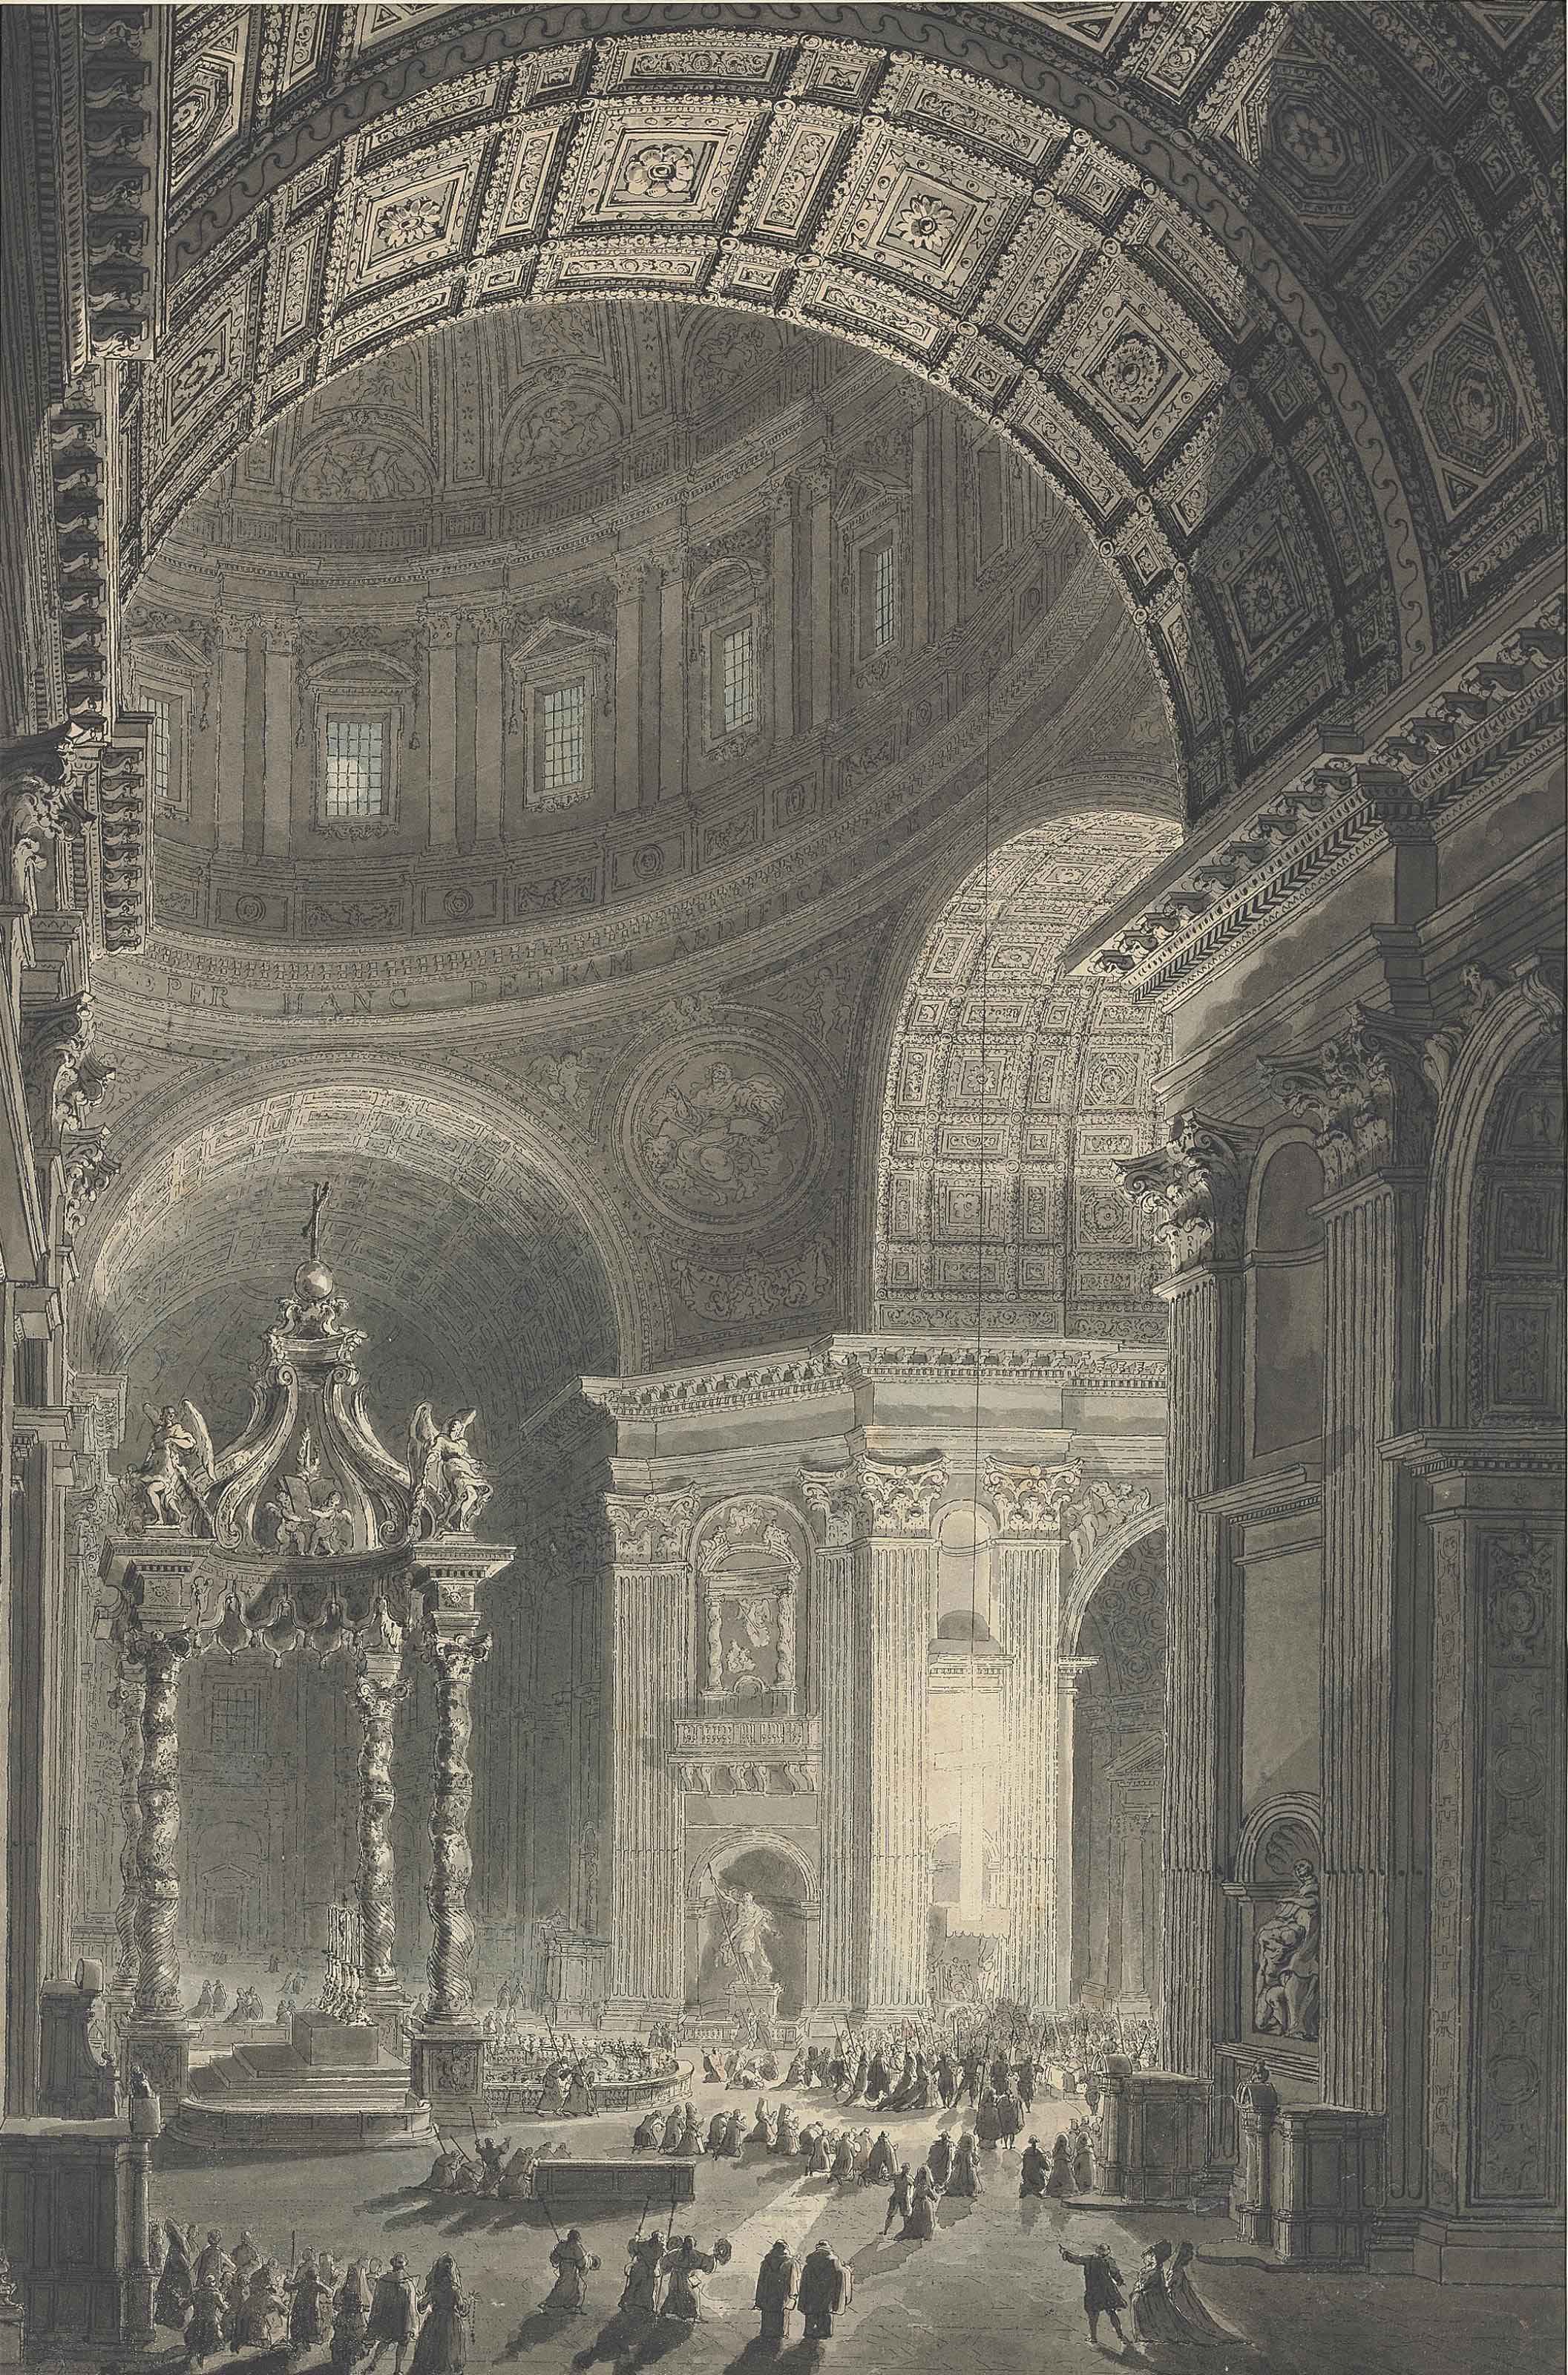 Illumination de la Croix de Saint-Pierre (An Interior of St. Peter's from the South Transept, with the Baldacchino, the Illuminated Hanging Cross, and St. Longinus)